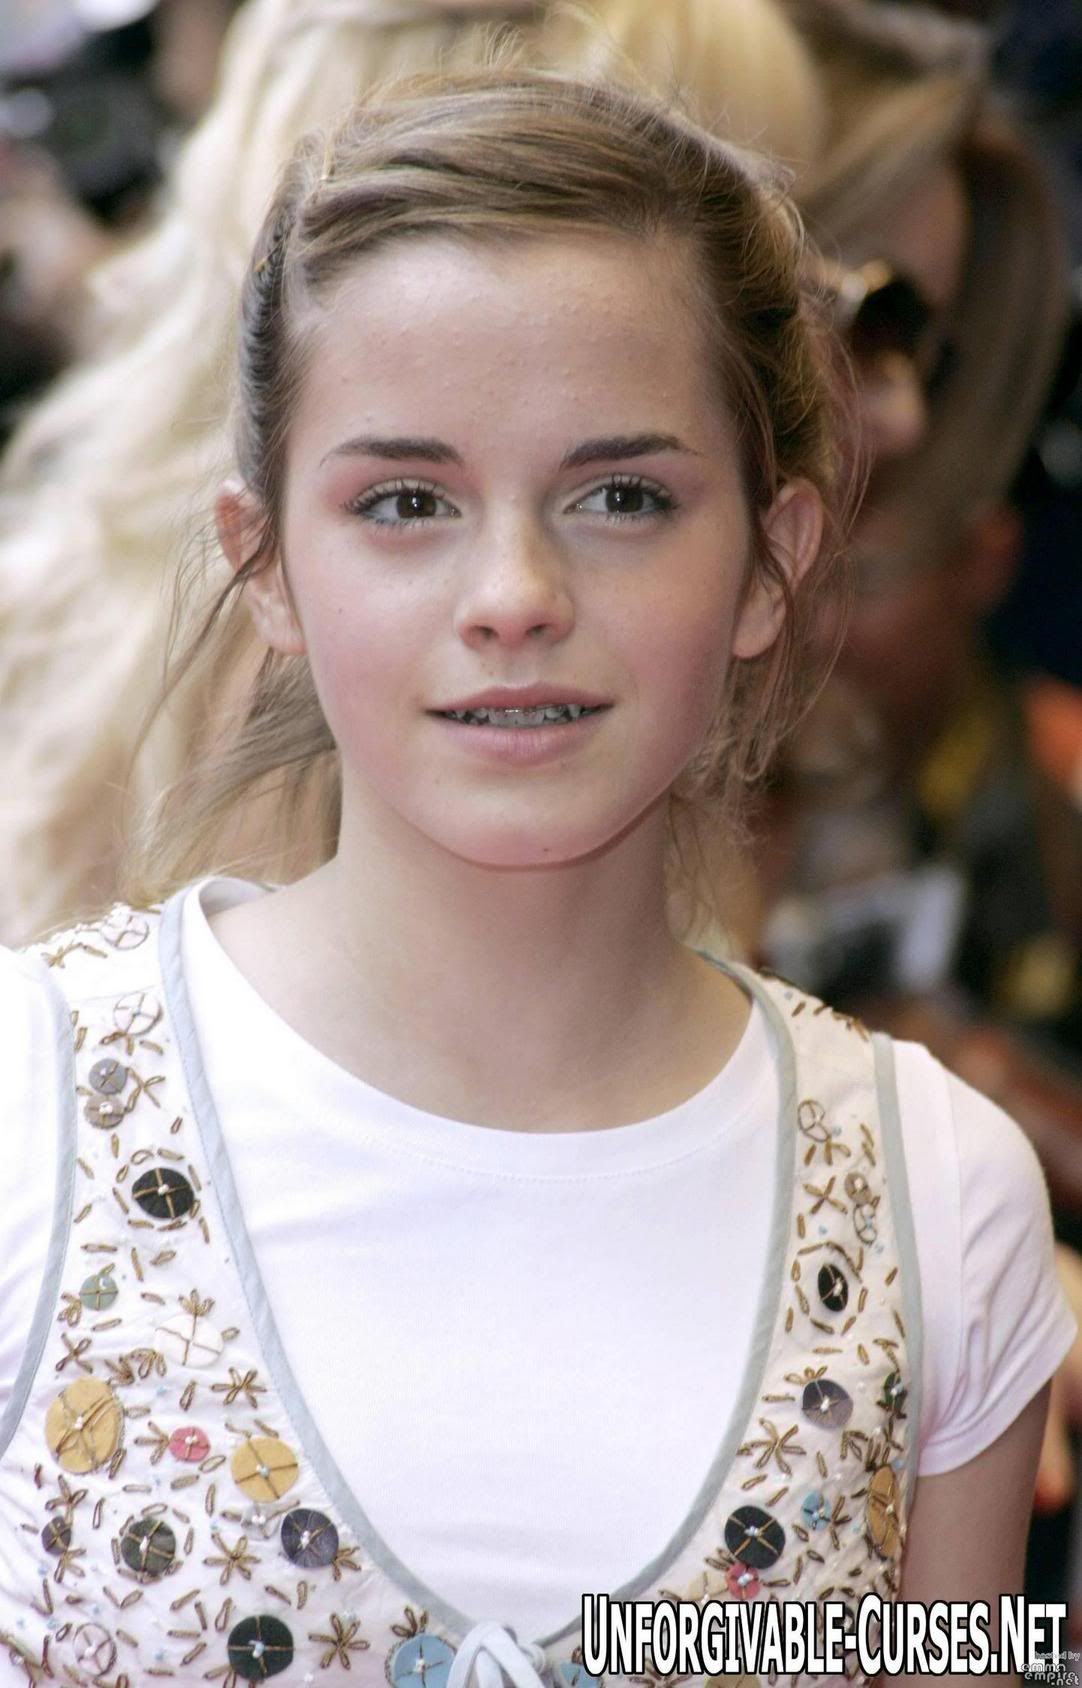 emma watson teeth heres a pic | braces and teeth stuff | pinterest